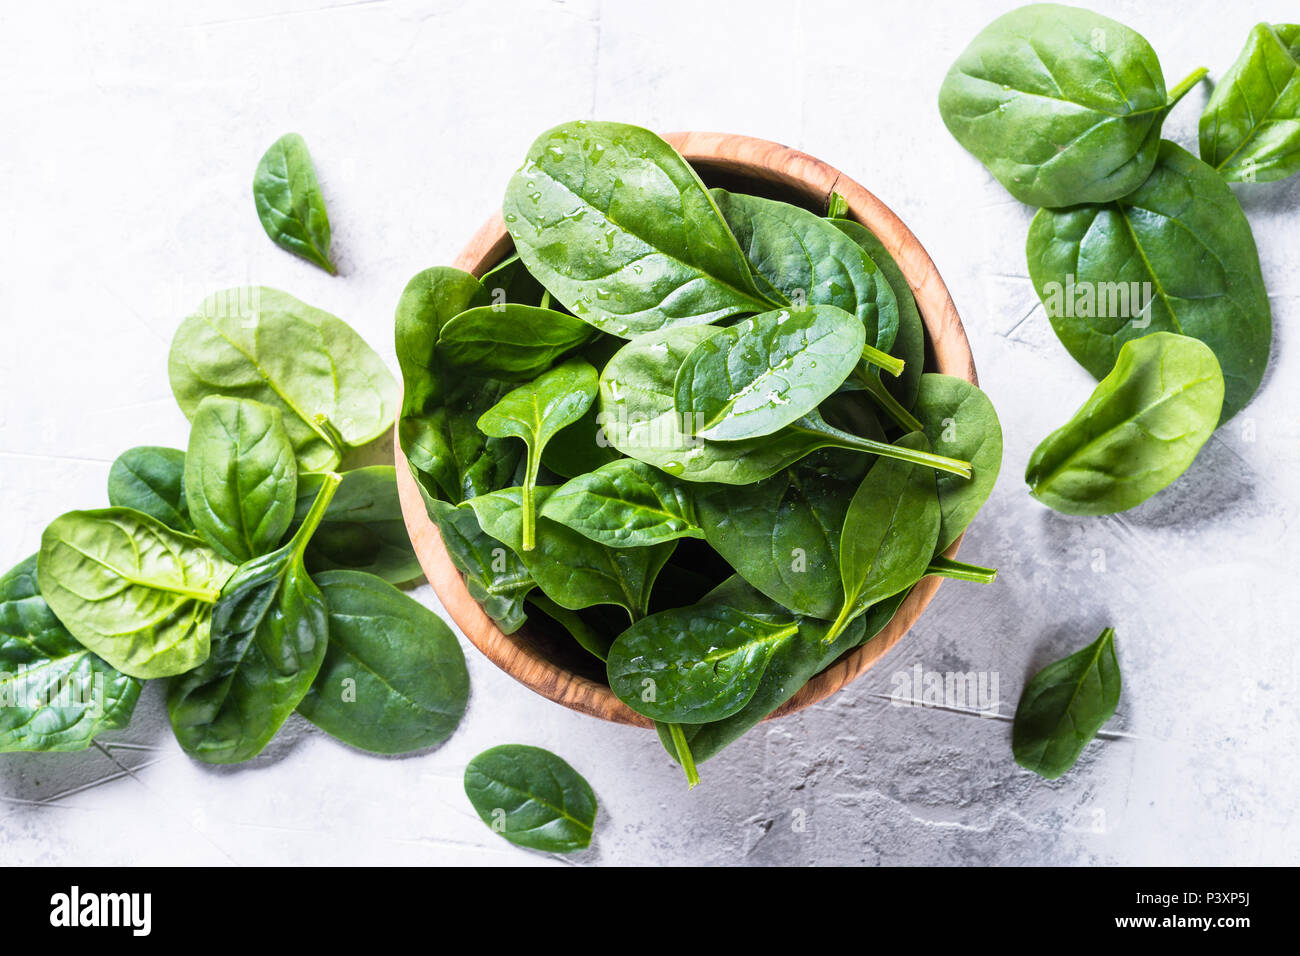 Baby spinach on gray stone table. Top view. - Stock Image